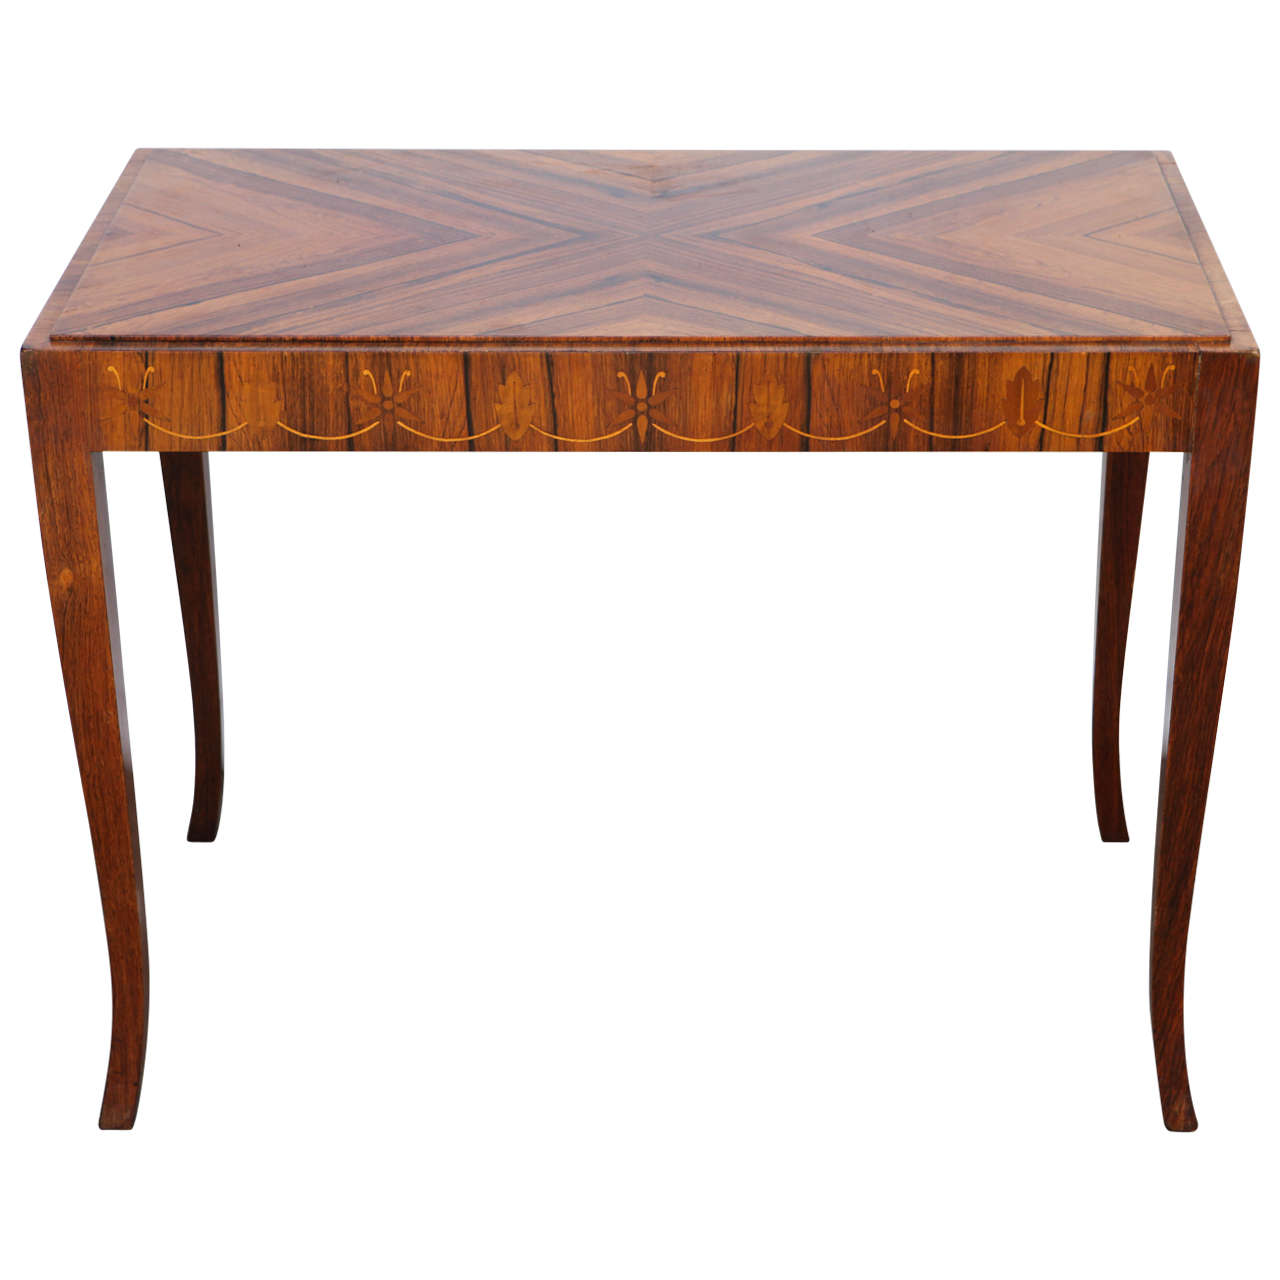 Vintage French Deco Inlaid Occasional Table